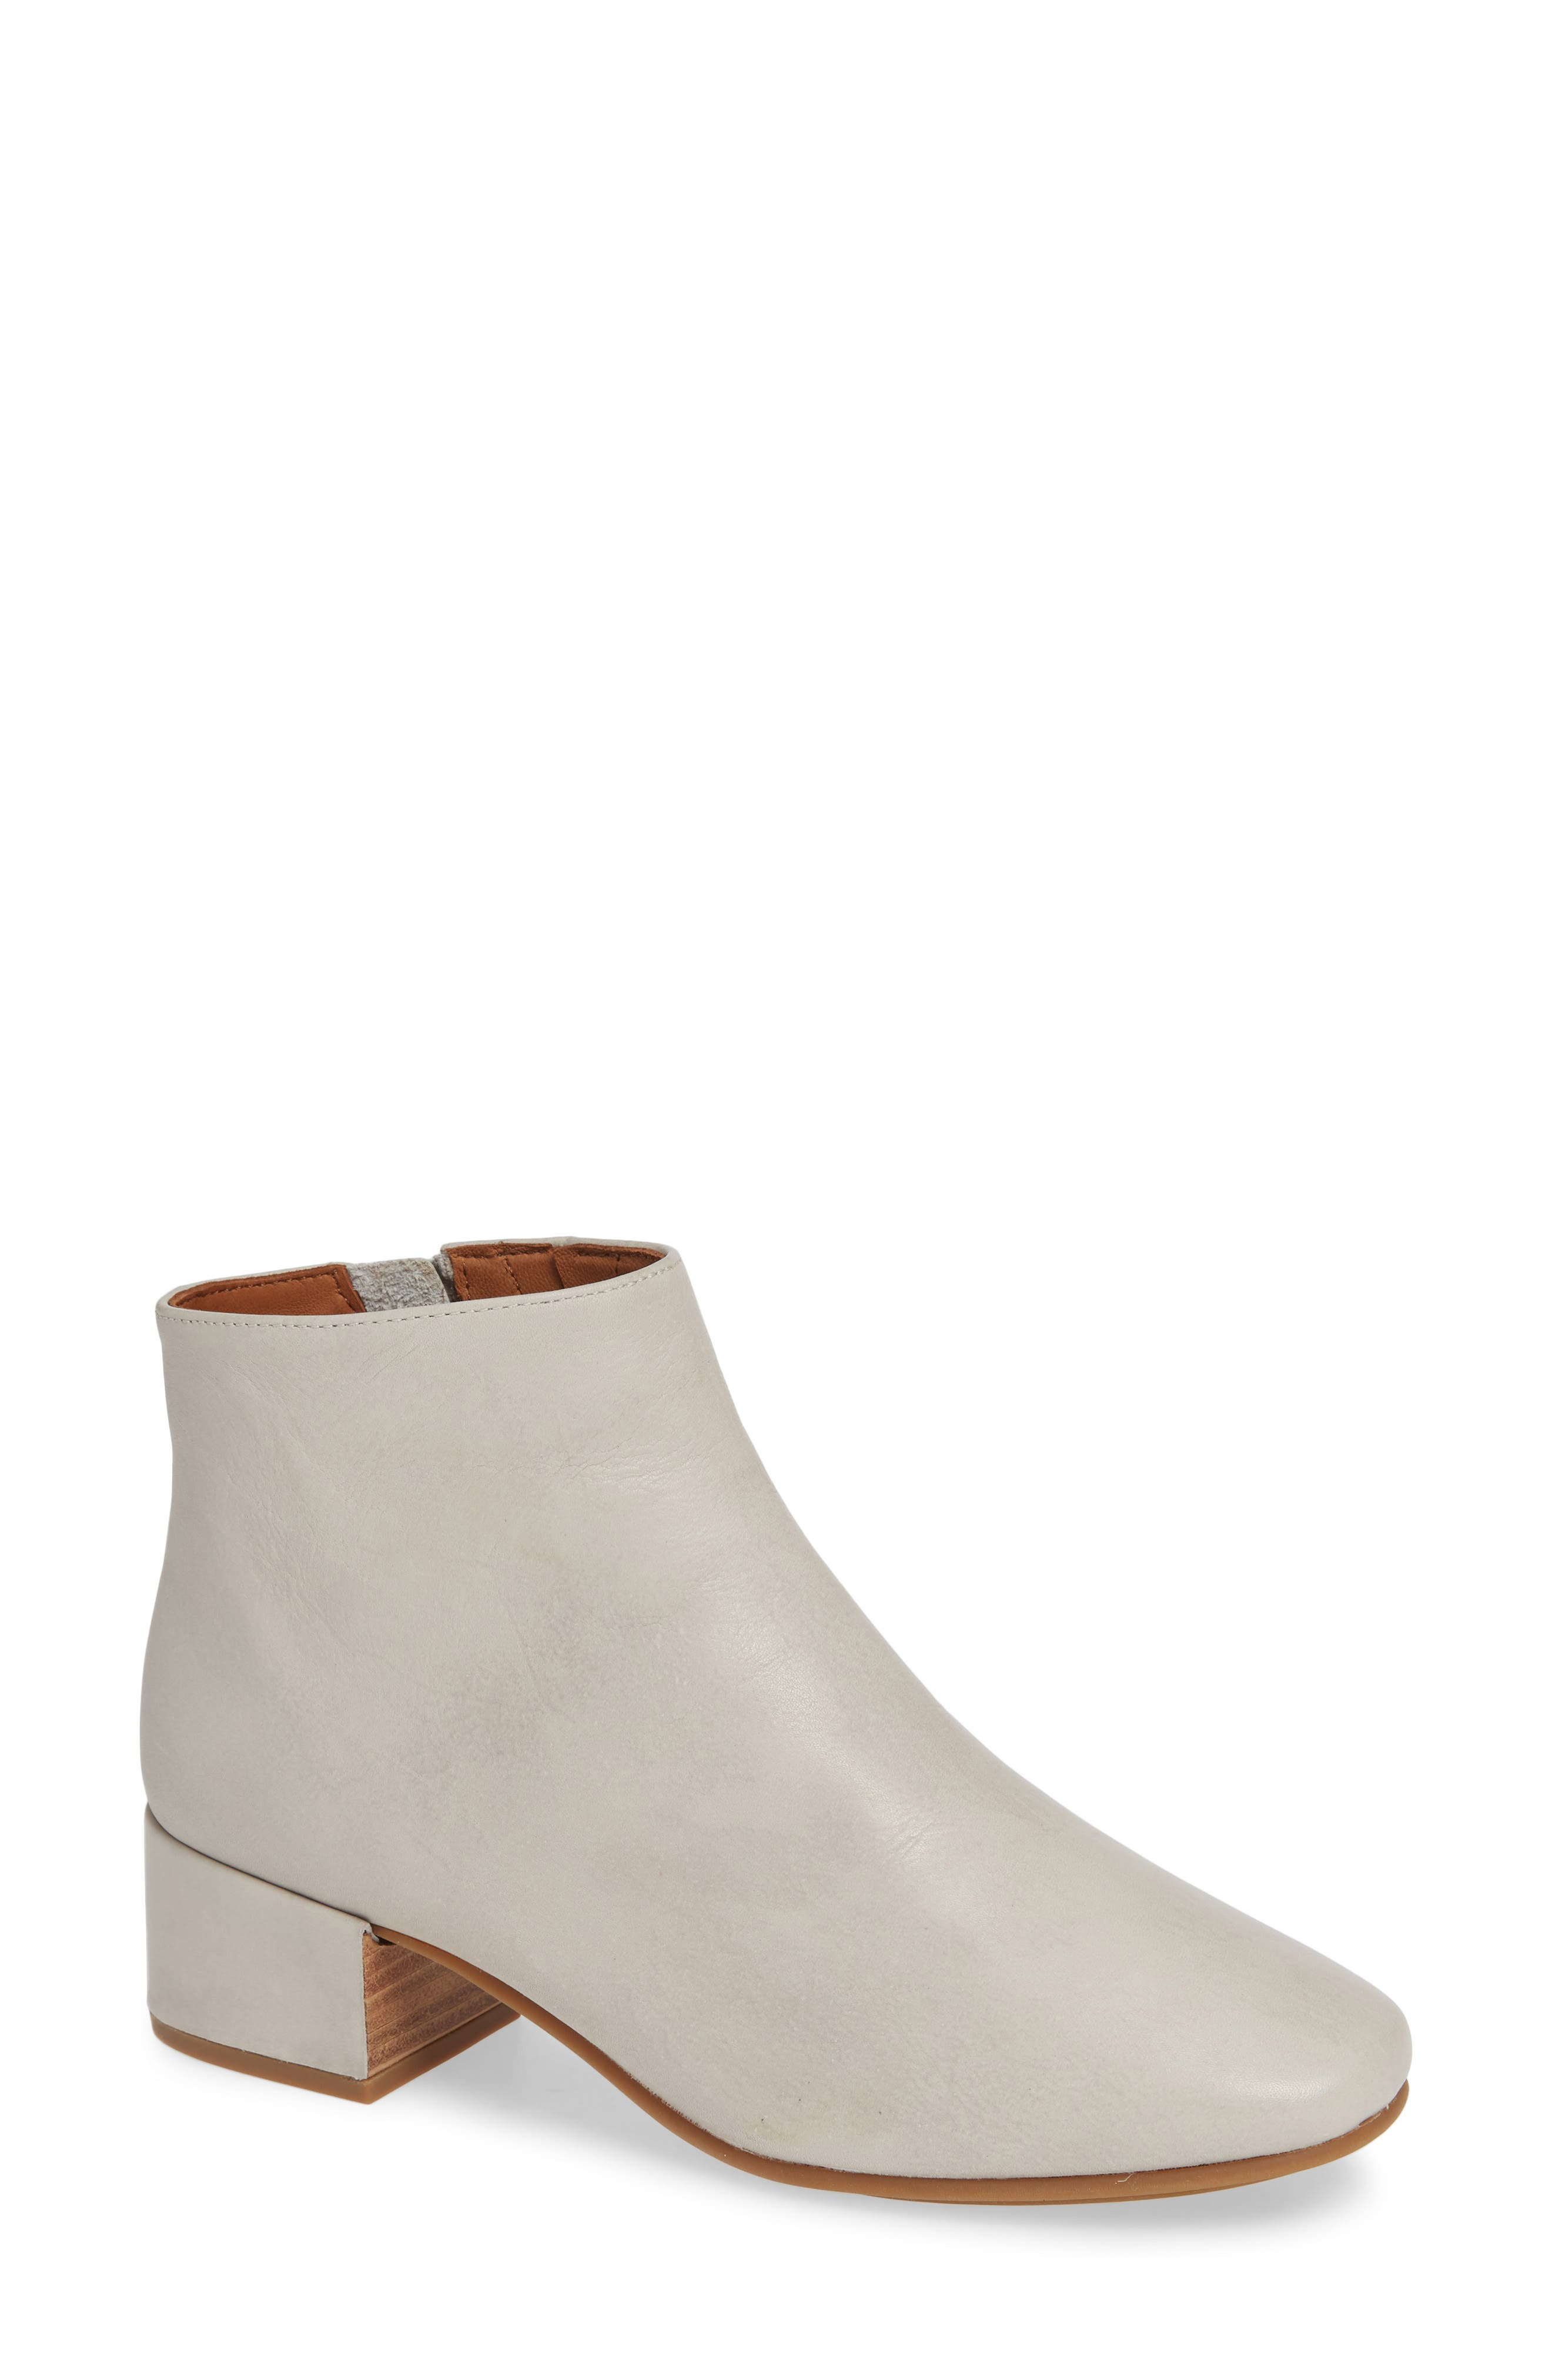 GENTLE SOULS BY KENNETH COLE, Ella Bootie, Main thumbnail 1, color, LIGHT GREY LEATHER